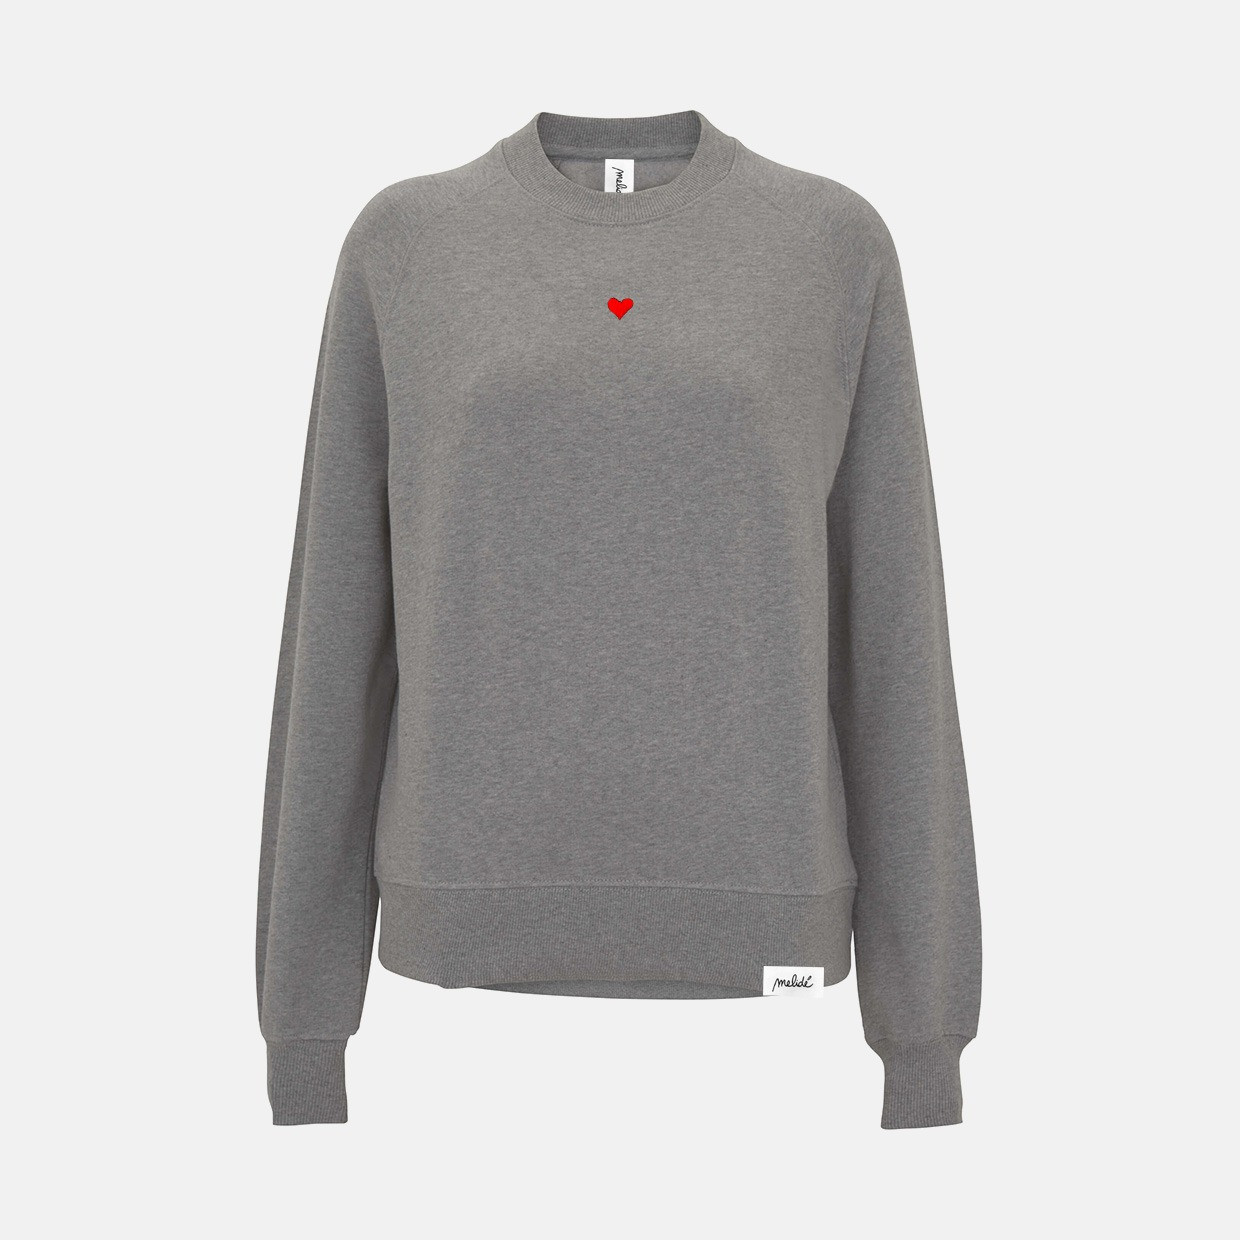 The CUORICINO raglan sweatshirt